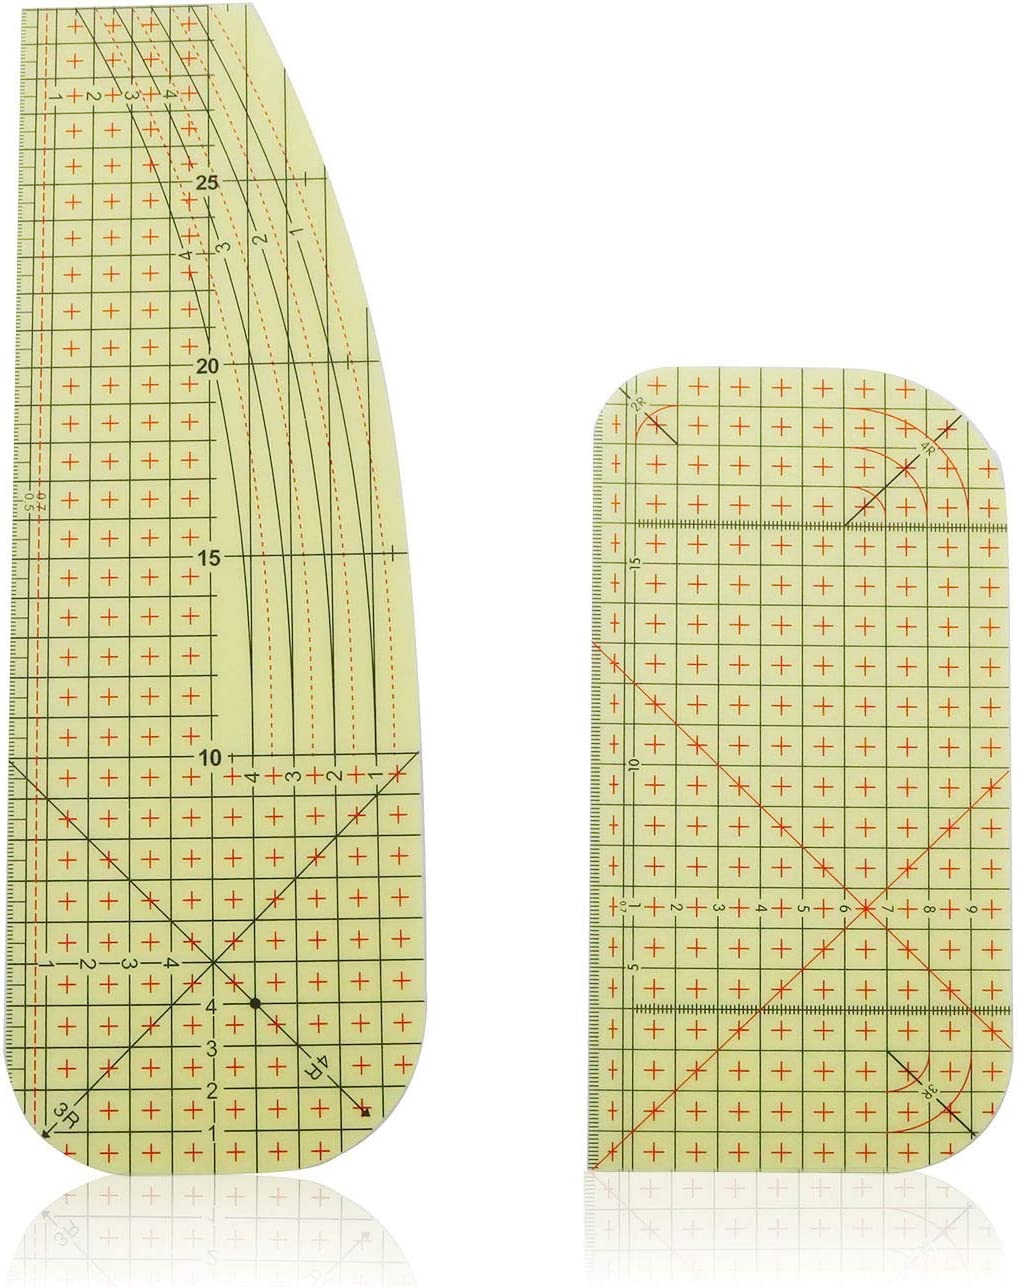 NX Garden 2pcs Sewing Hot Ironing Ruler Set, High Temperature Resistant Patchwork Control Ruler with Soft Measure Tape and U-Shape Scissors For Clothing Making DIY Sewing Supplies Handmade